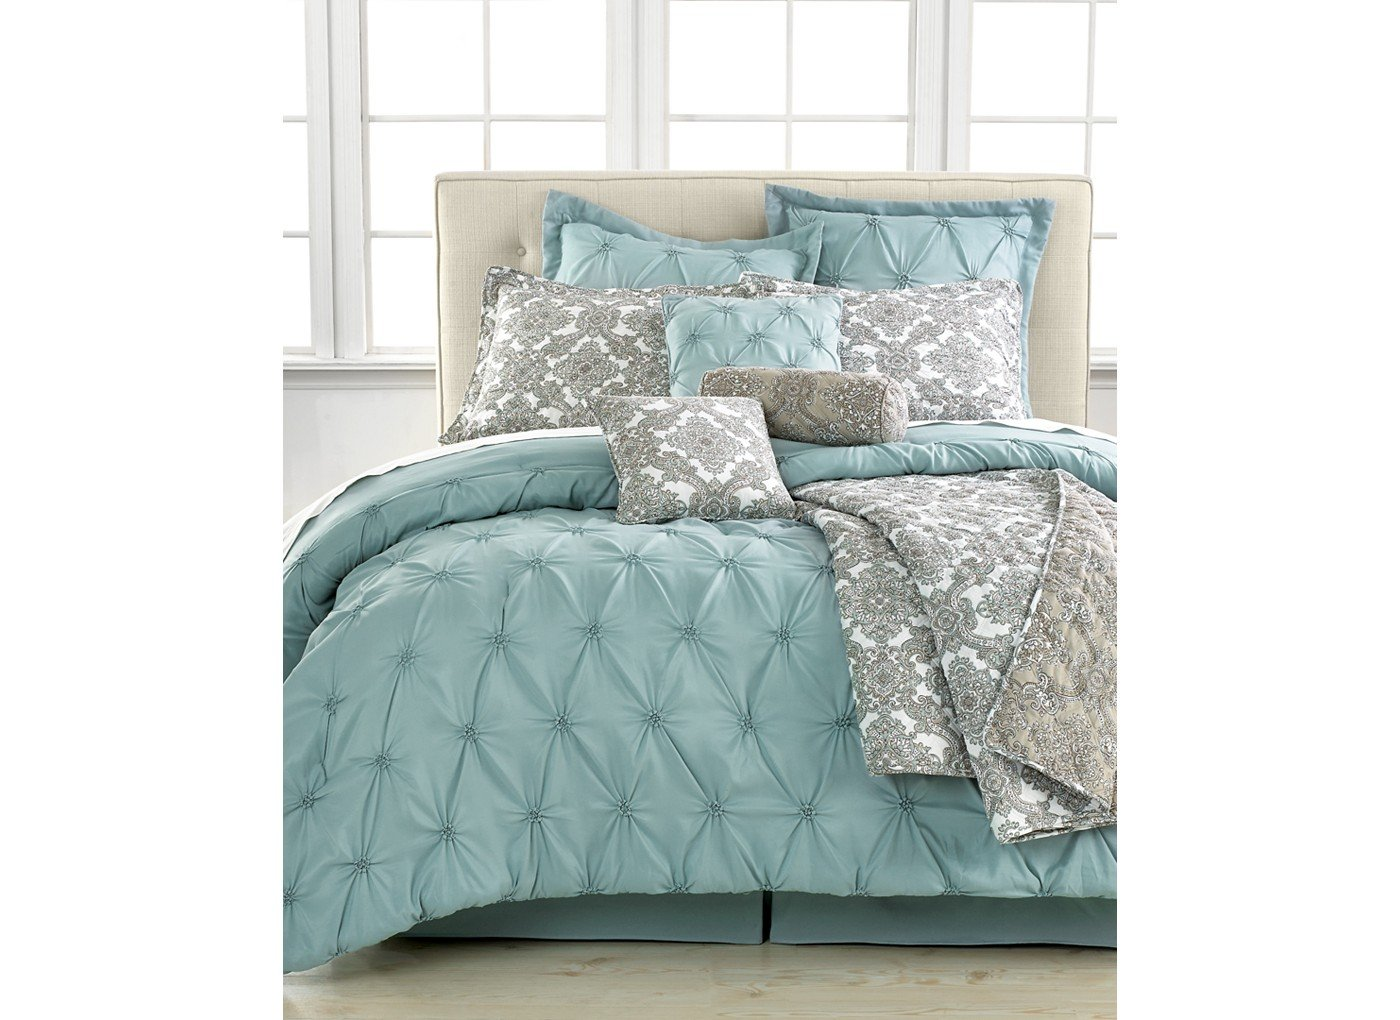 king in blue white decoration park tufted comforter piece gray set silver